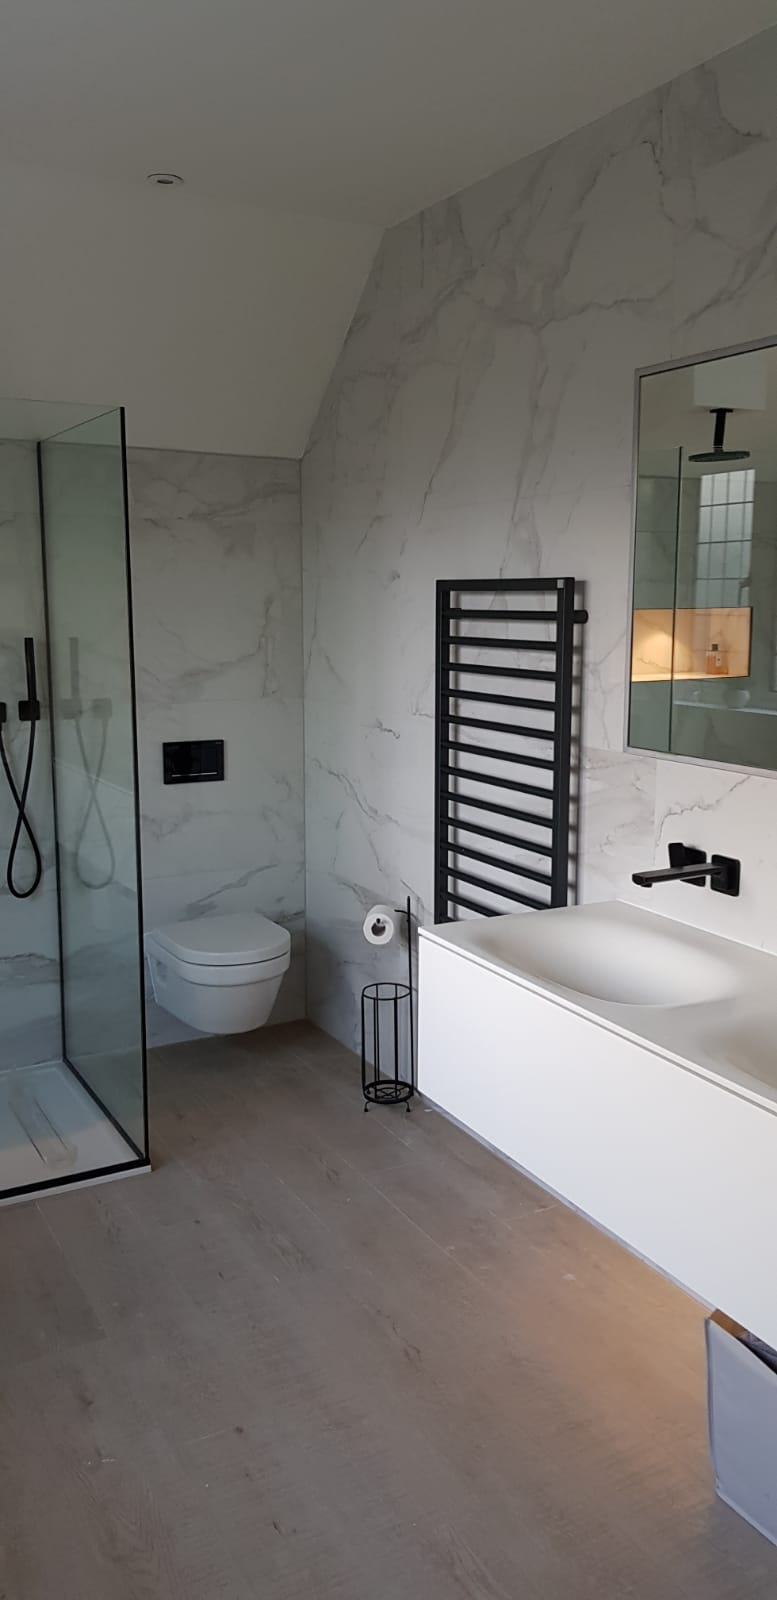 WHITE BATHROOM, WHITE MARBLE, MINIMAL BATHROOM.jpeg